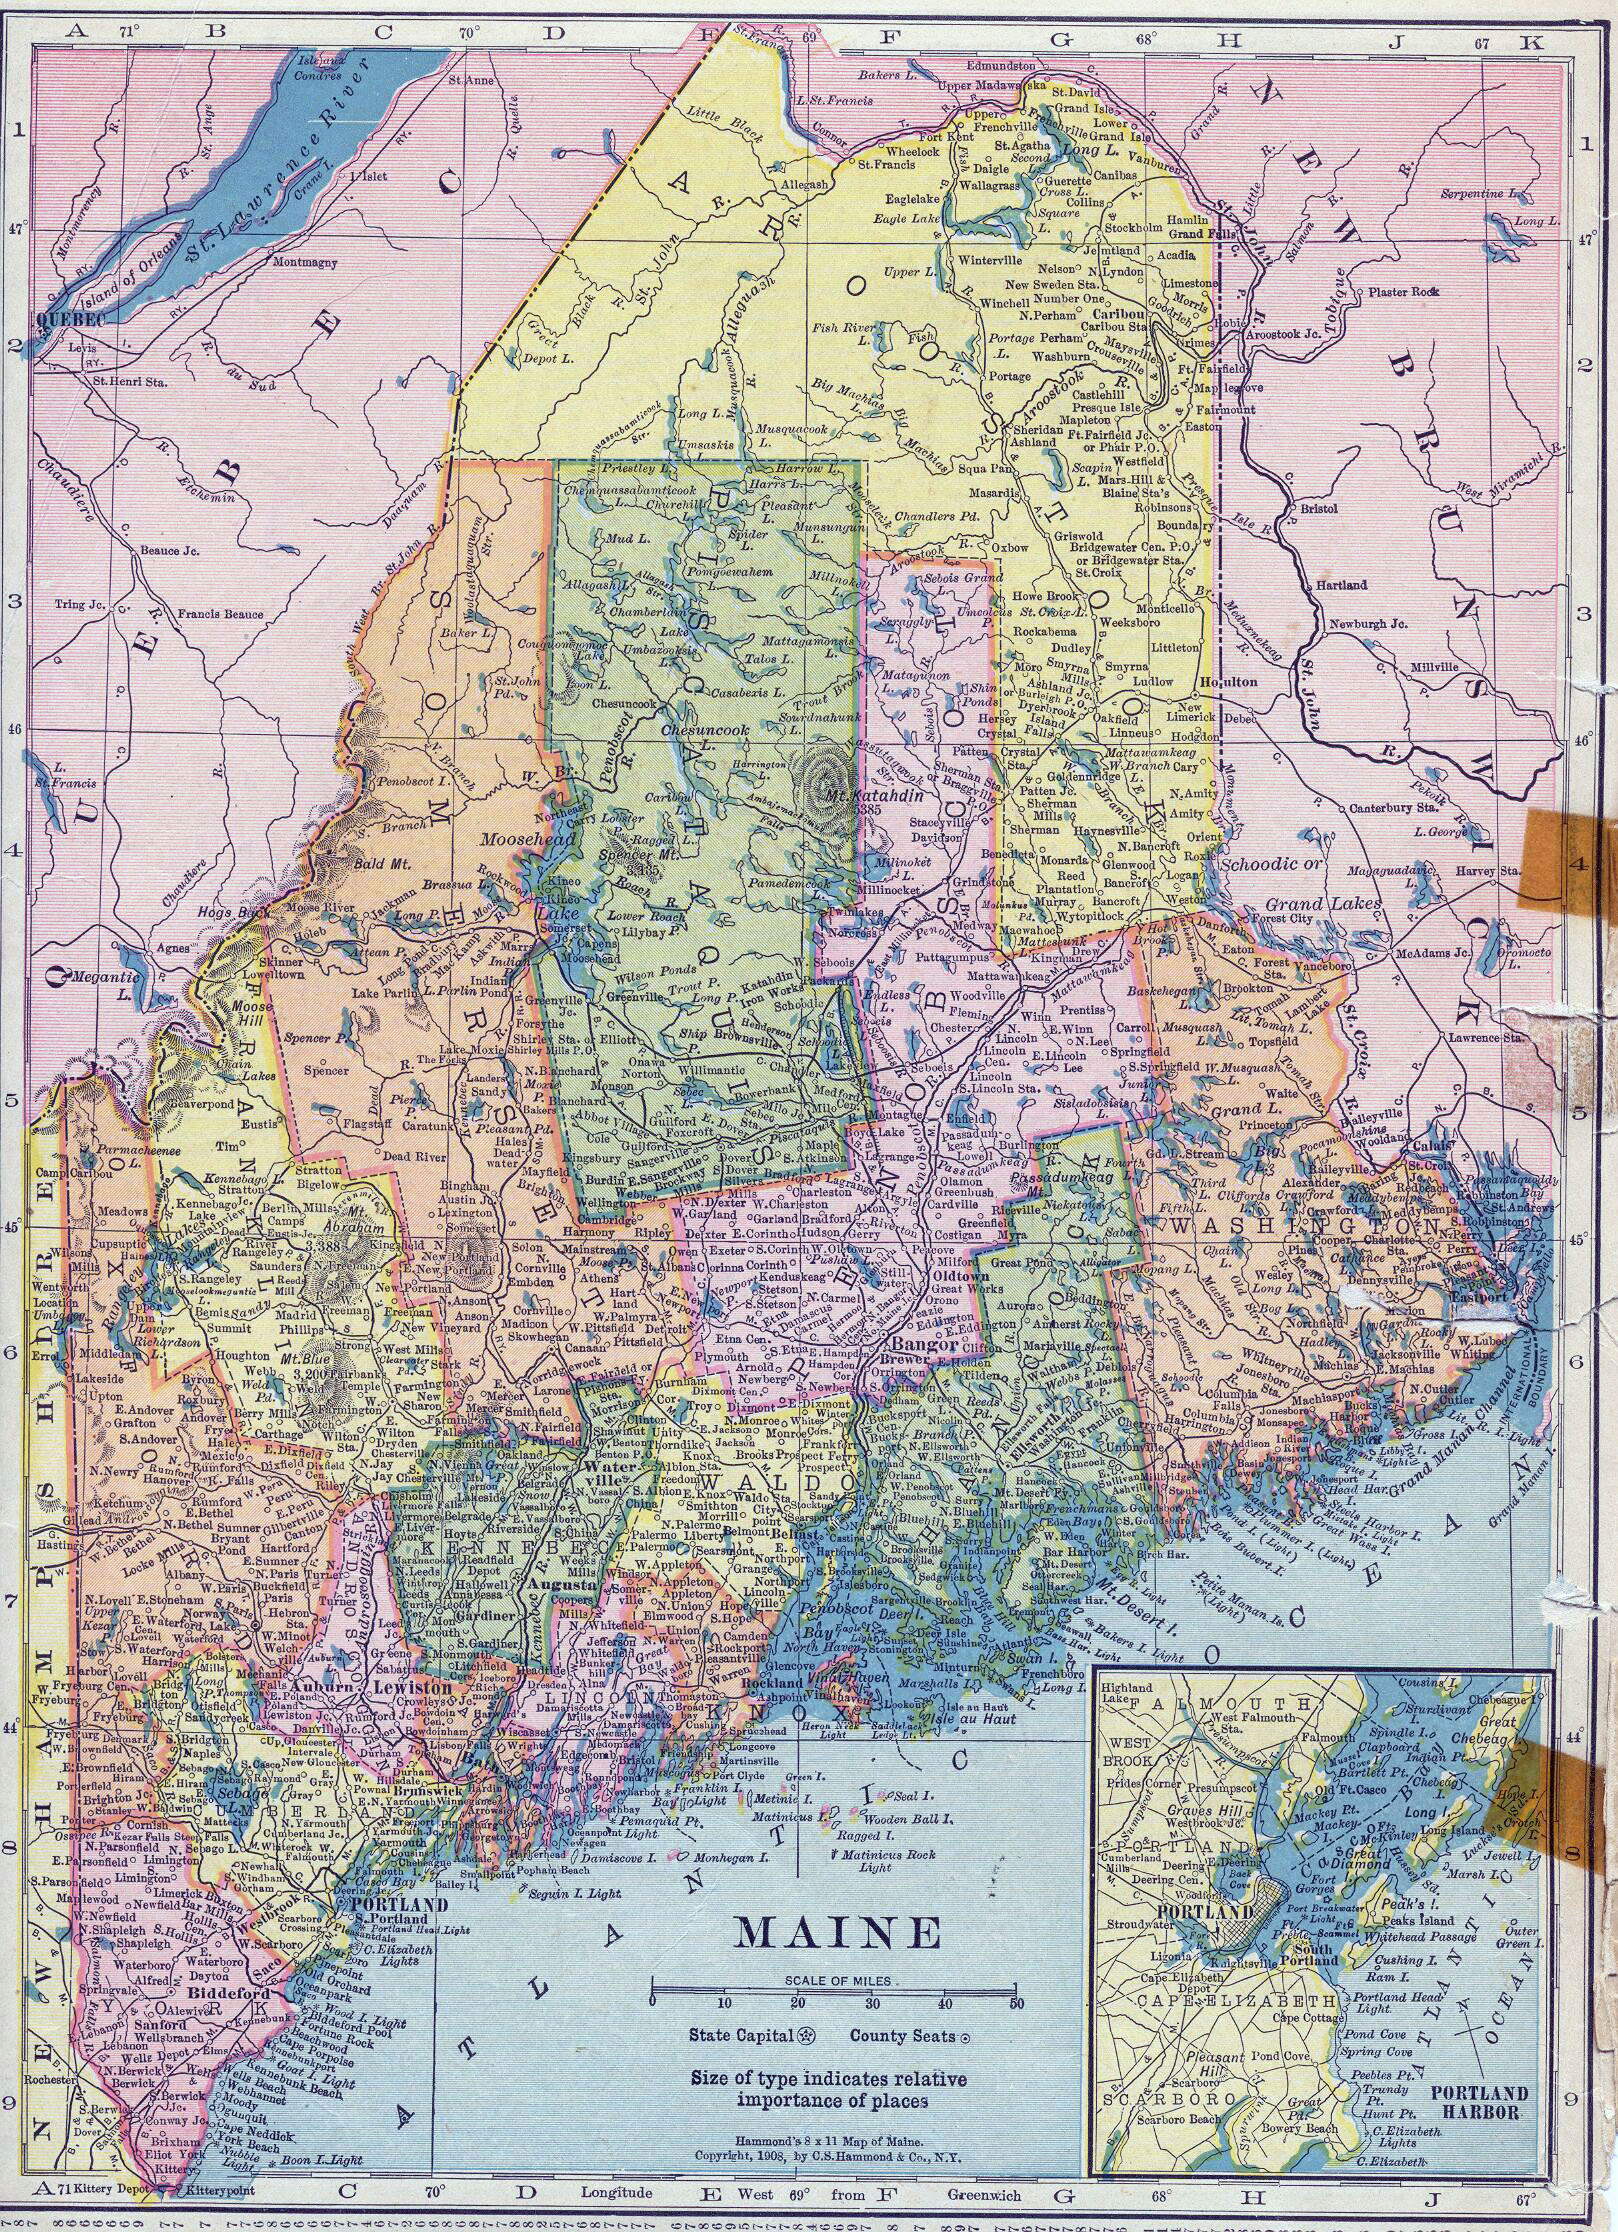 State Of Maine Map With Cities.Large Detailed Old Administrative Map Of Maine State With Roads And